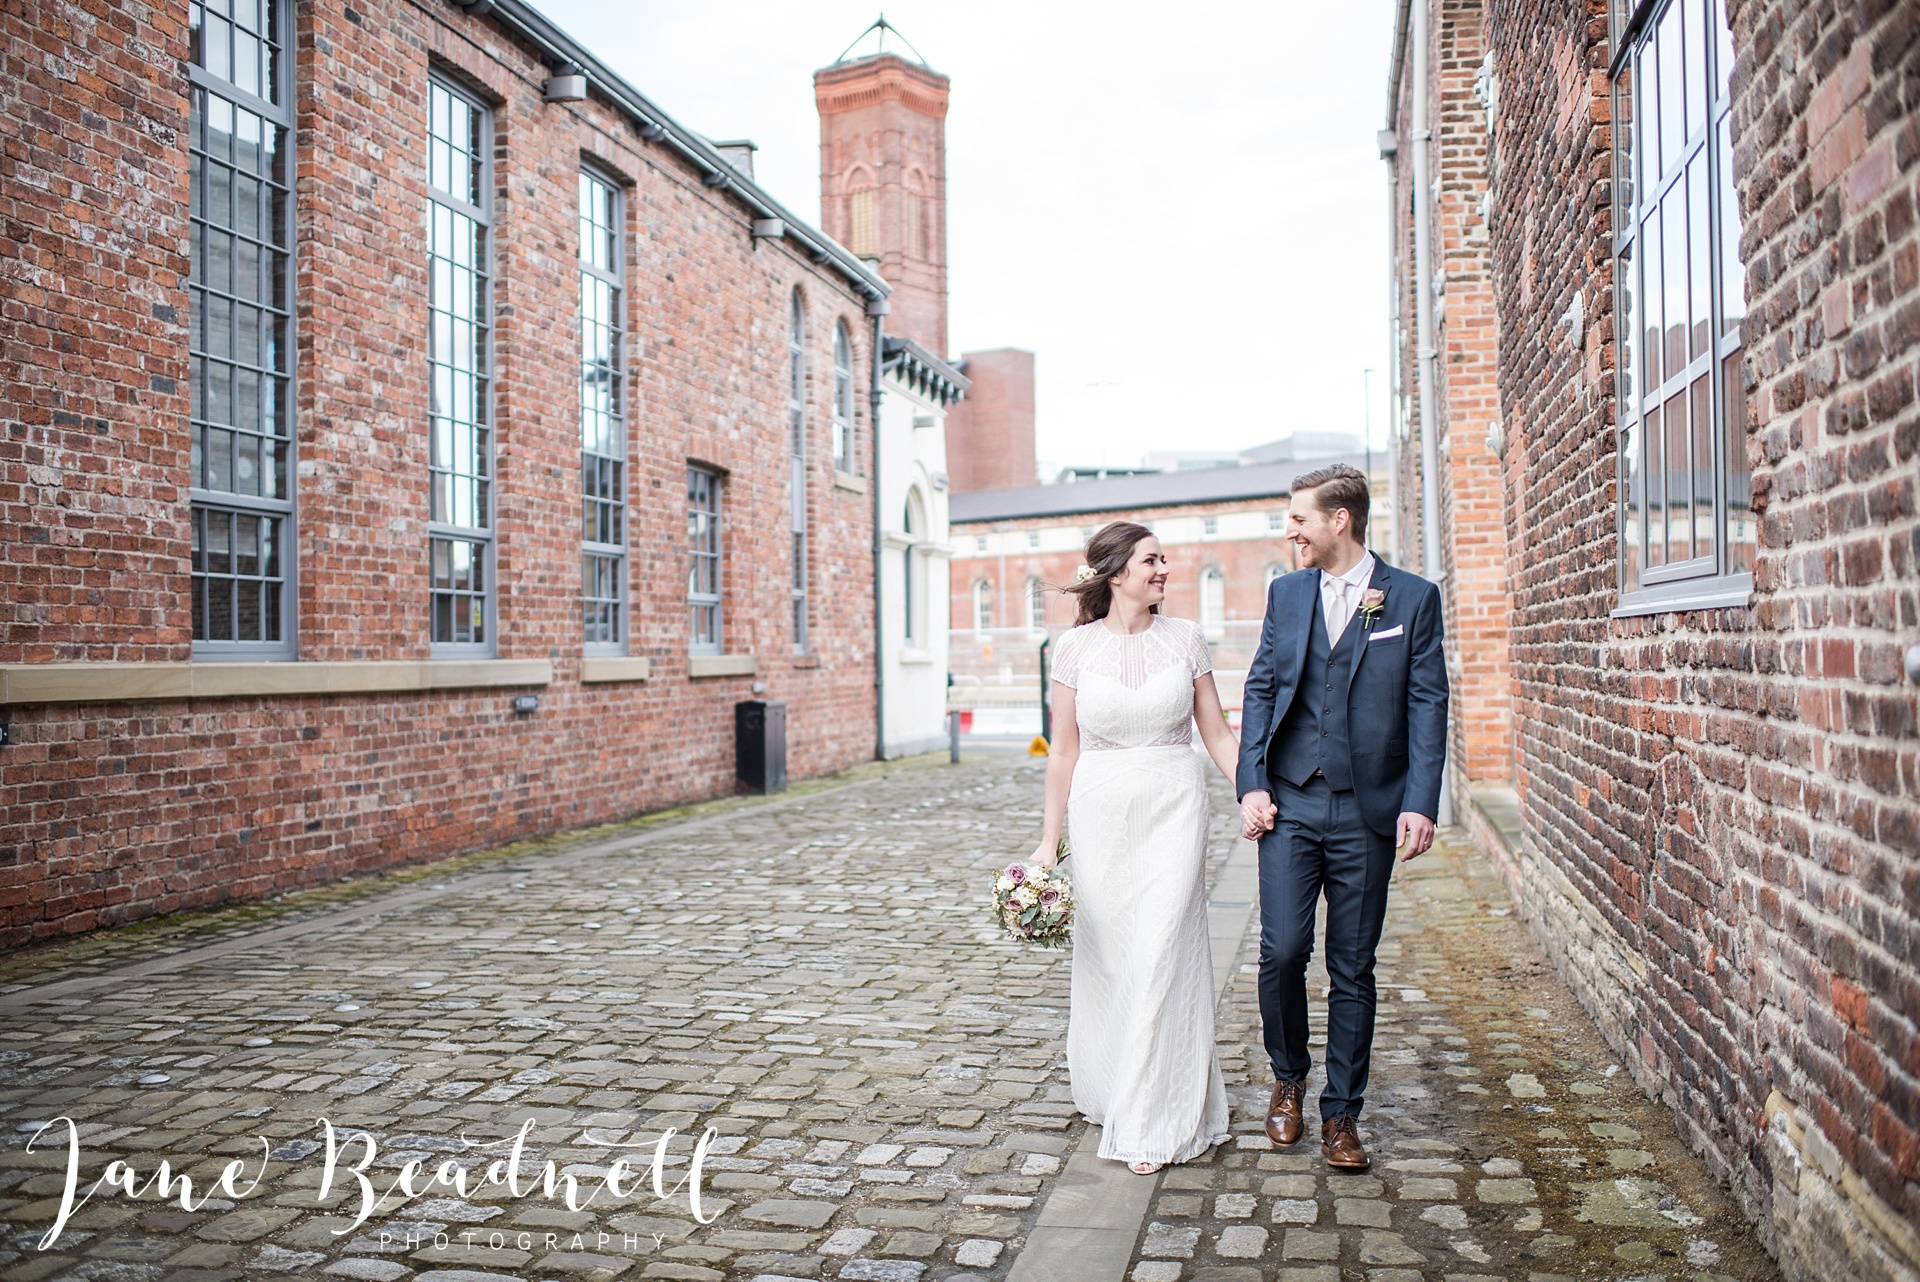 Wedding photography Cross Keys Leeds Wedding Jane Beadnell Photography_0098